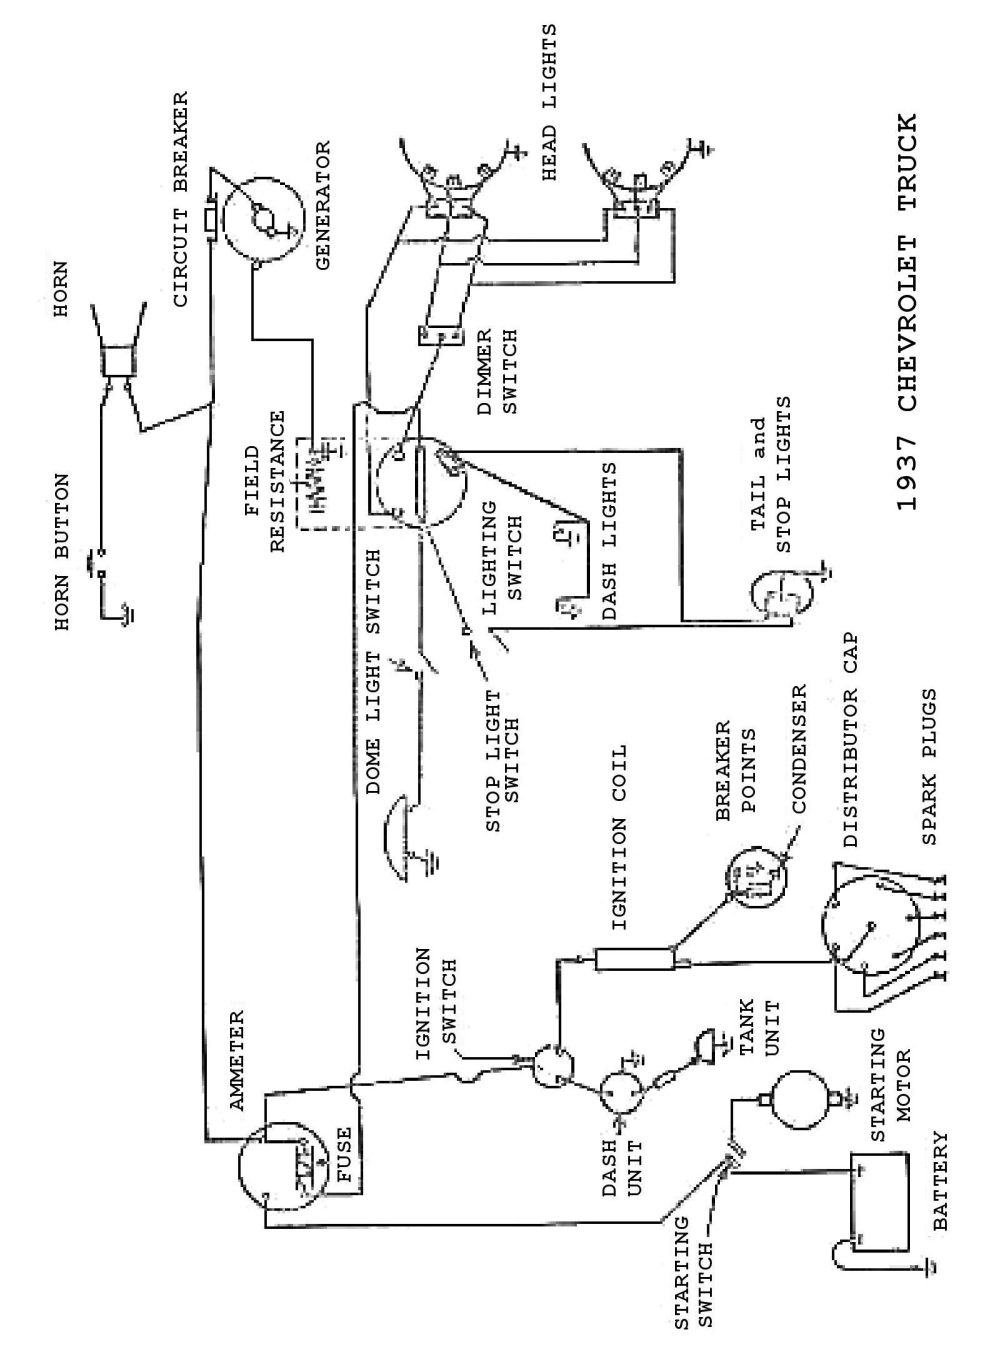 medium resolution of ignition circuit diagram for the 1940 47 cadillac all models charging circuit diagram for the 1940 49 buick all models